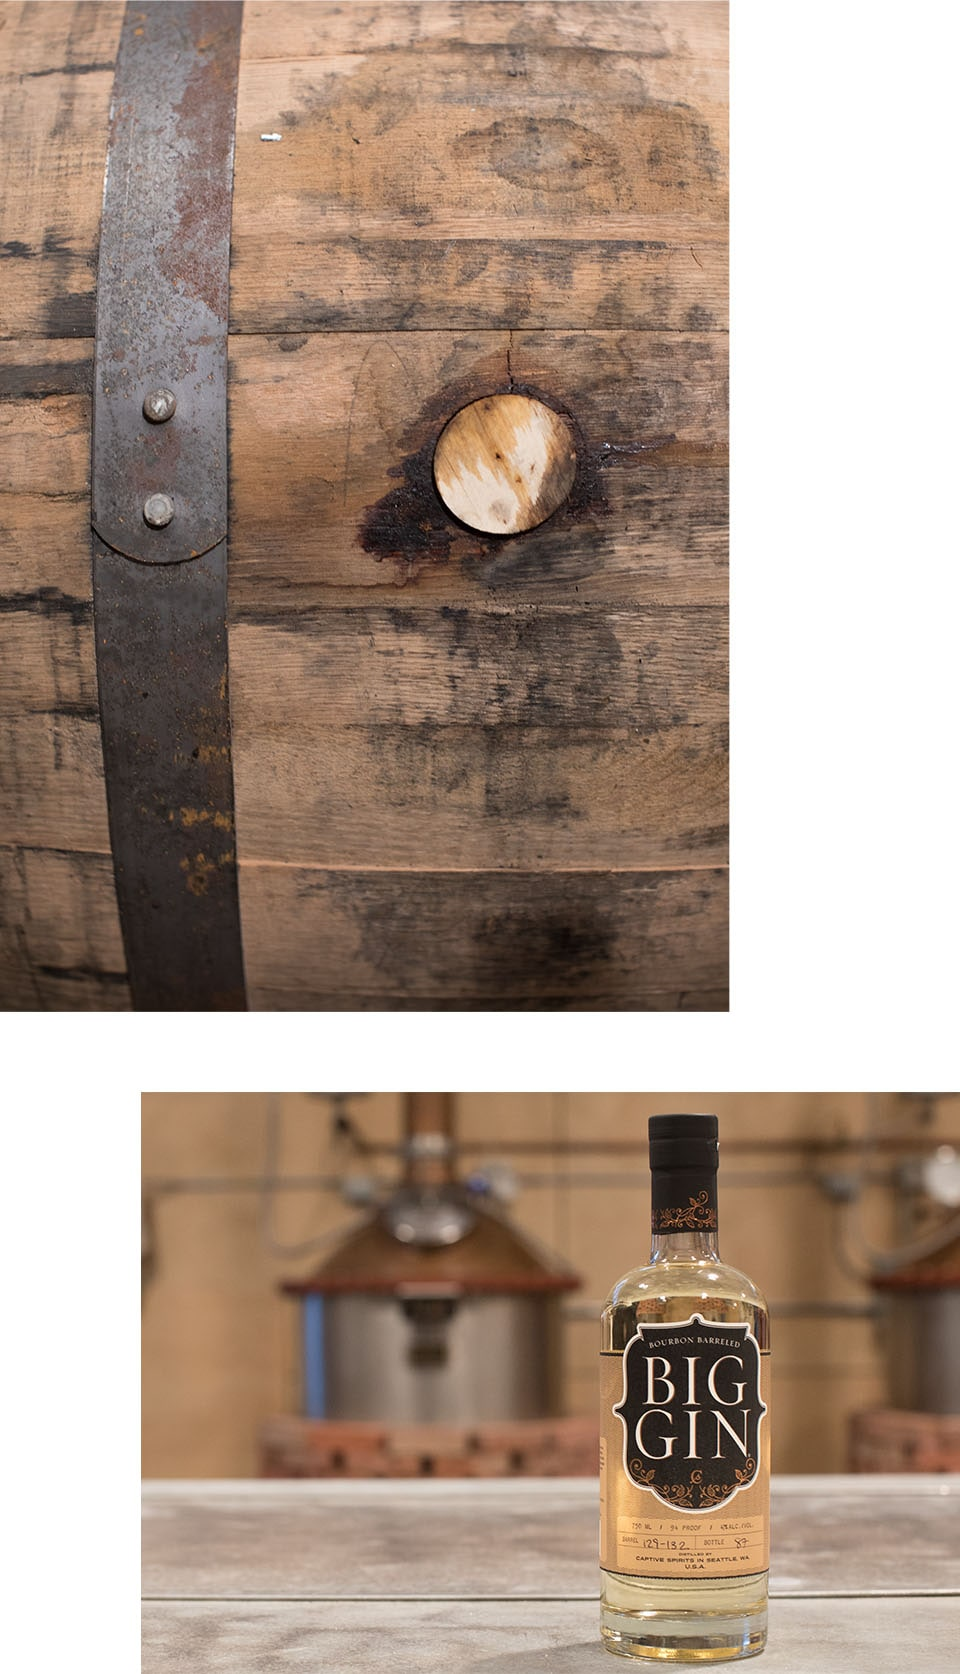 Image collage with closeup of wooden barrel and bottle of gin